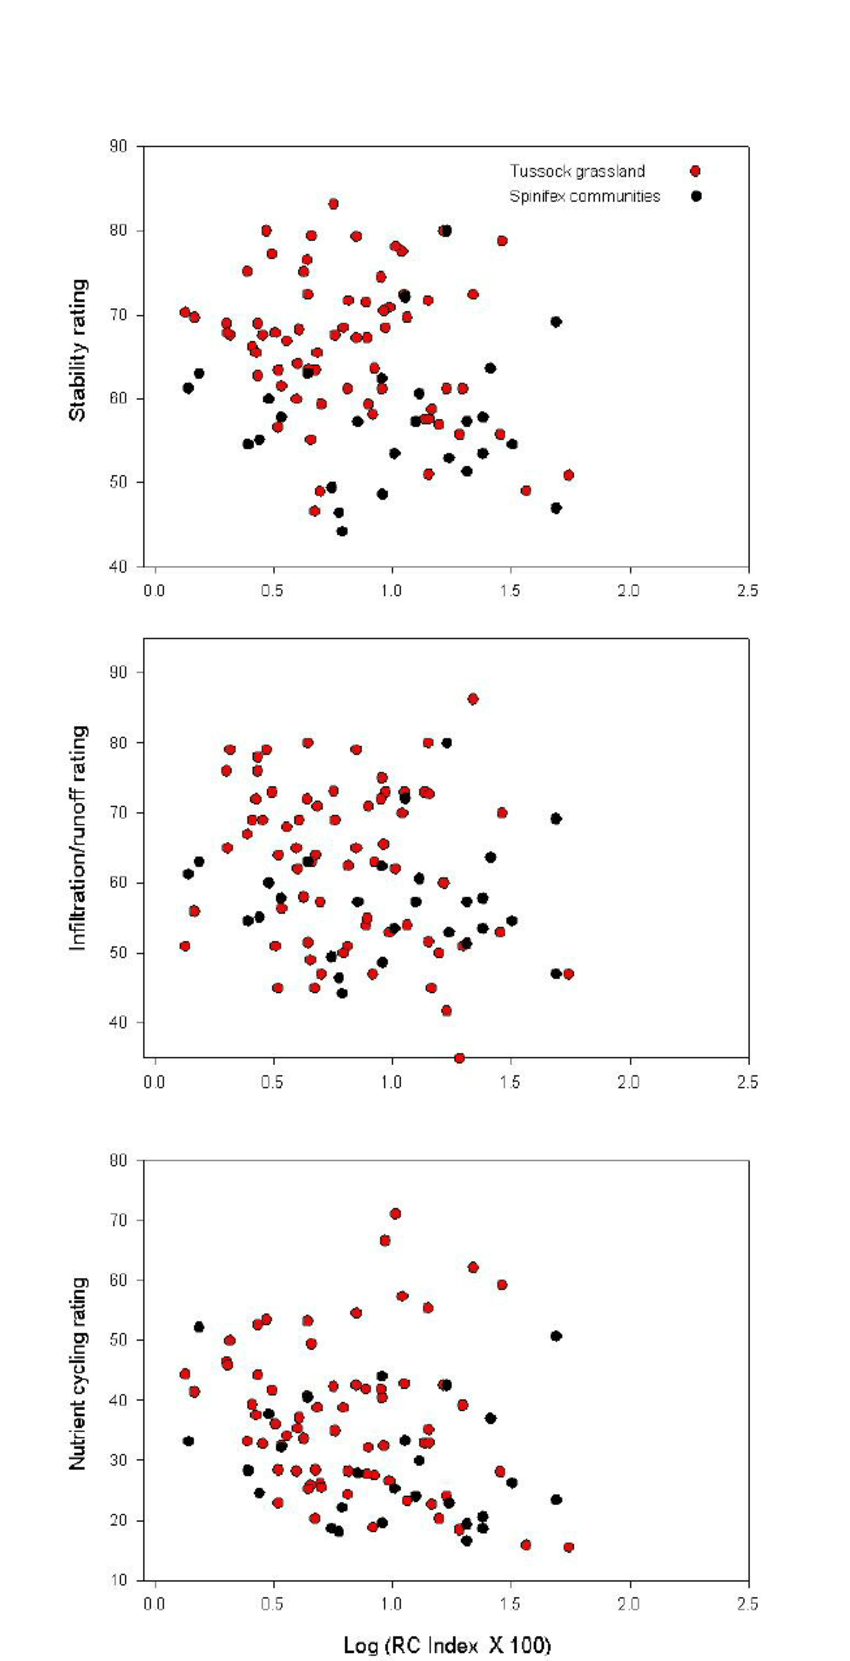 medium resolution of relationship between lfa ratings and resource capturing index expressed as log rc index x